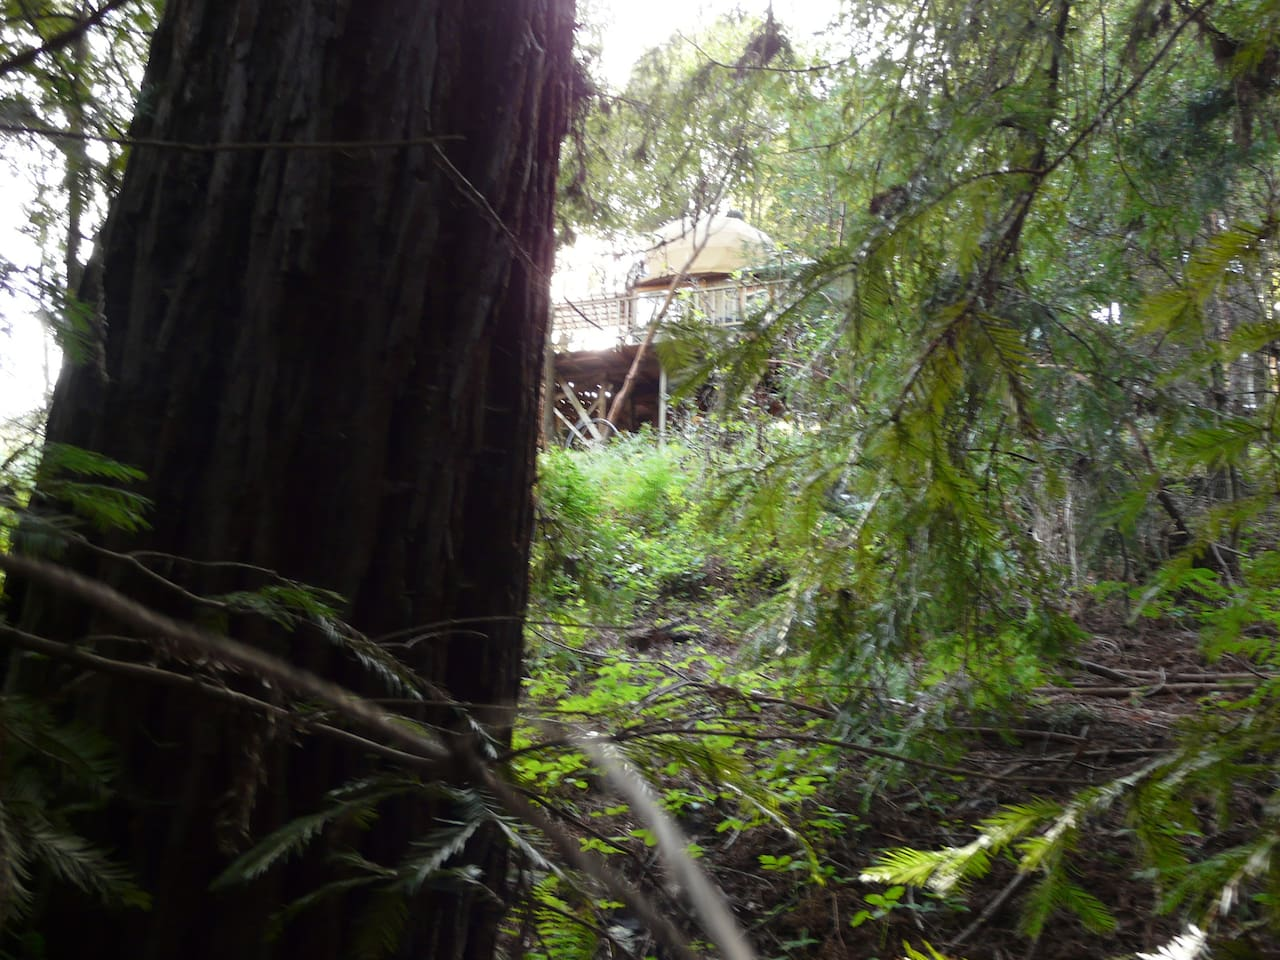 Looking up at the cabin from the Redwood Grove.